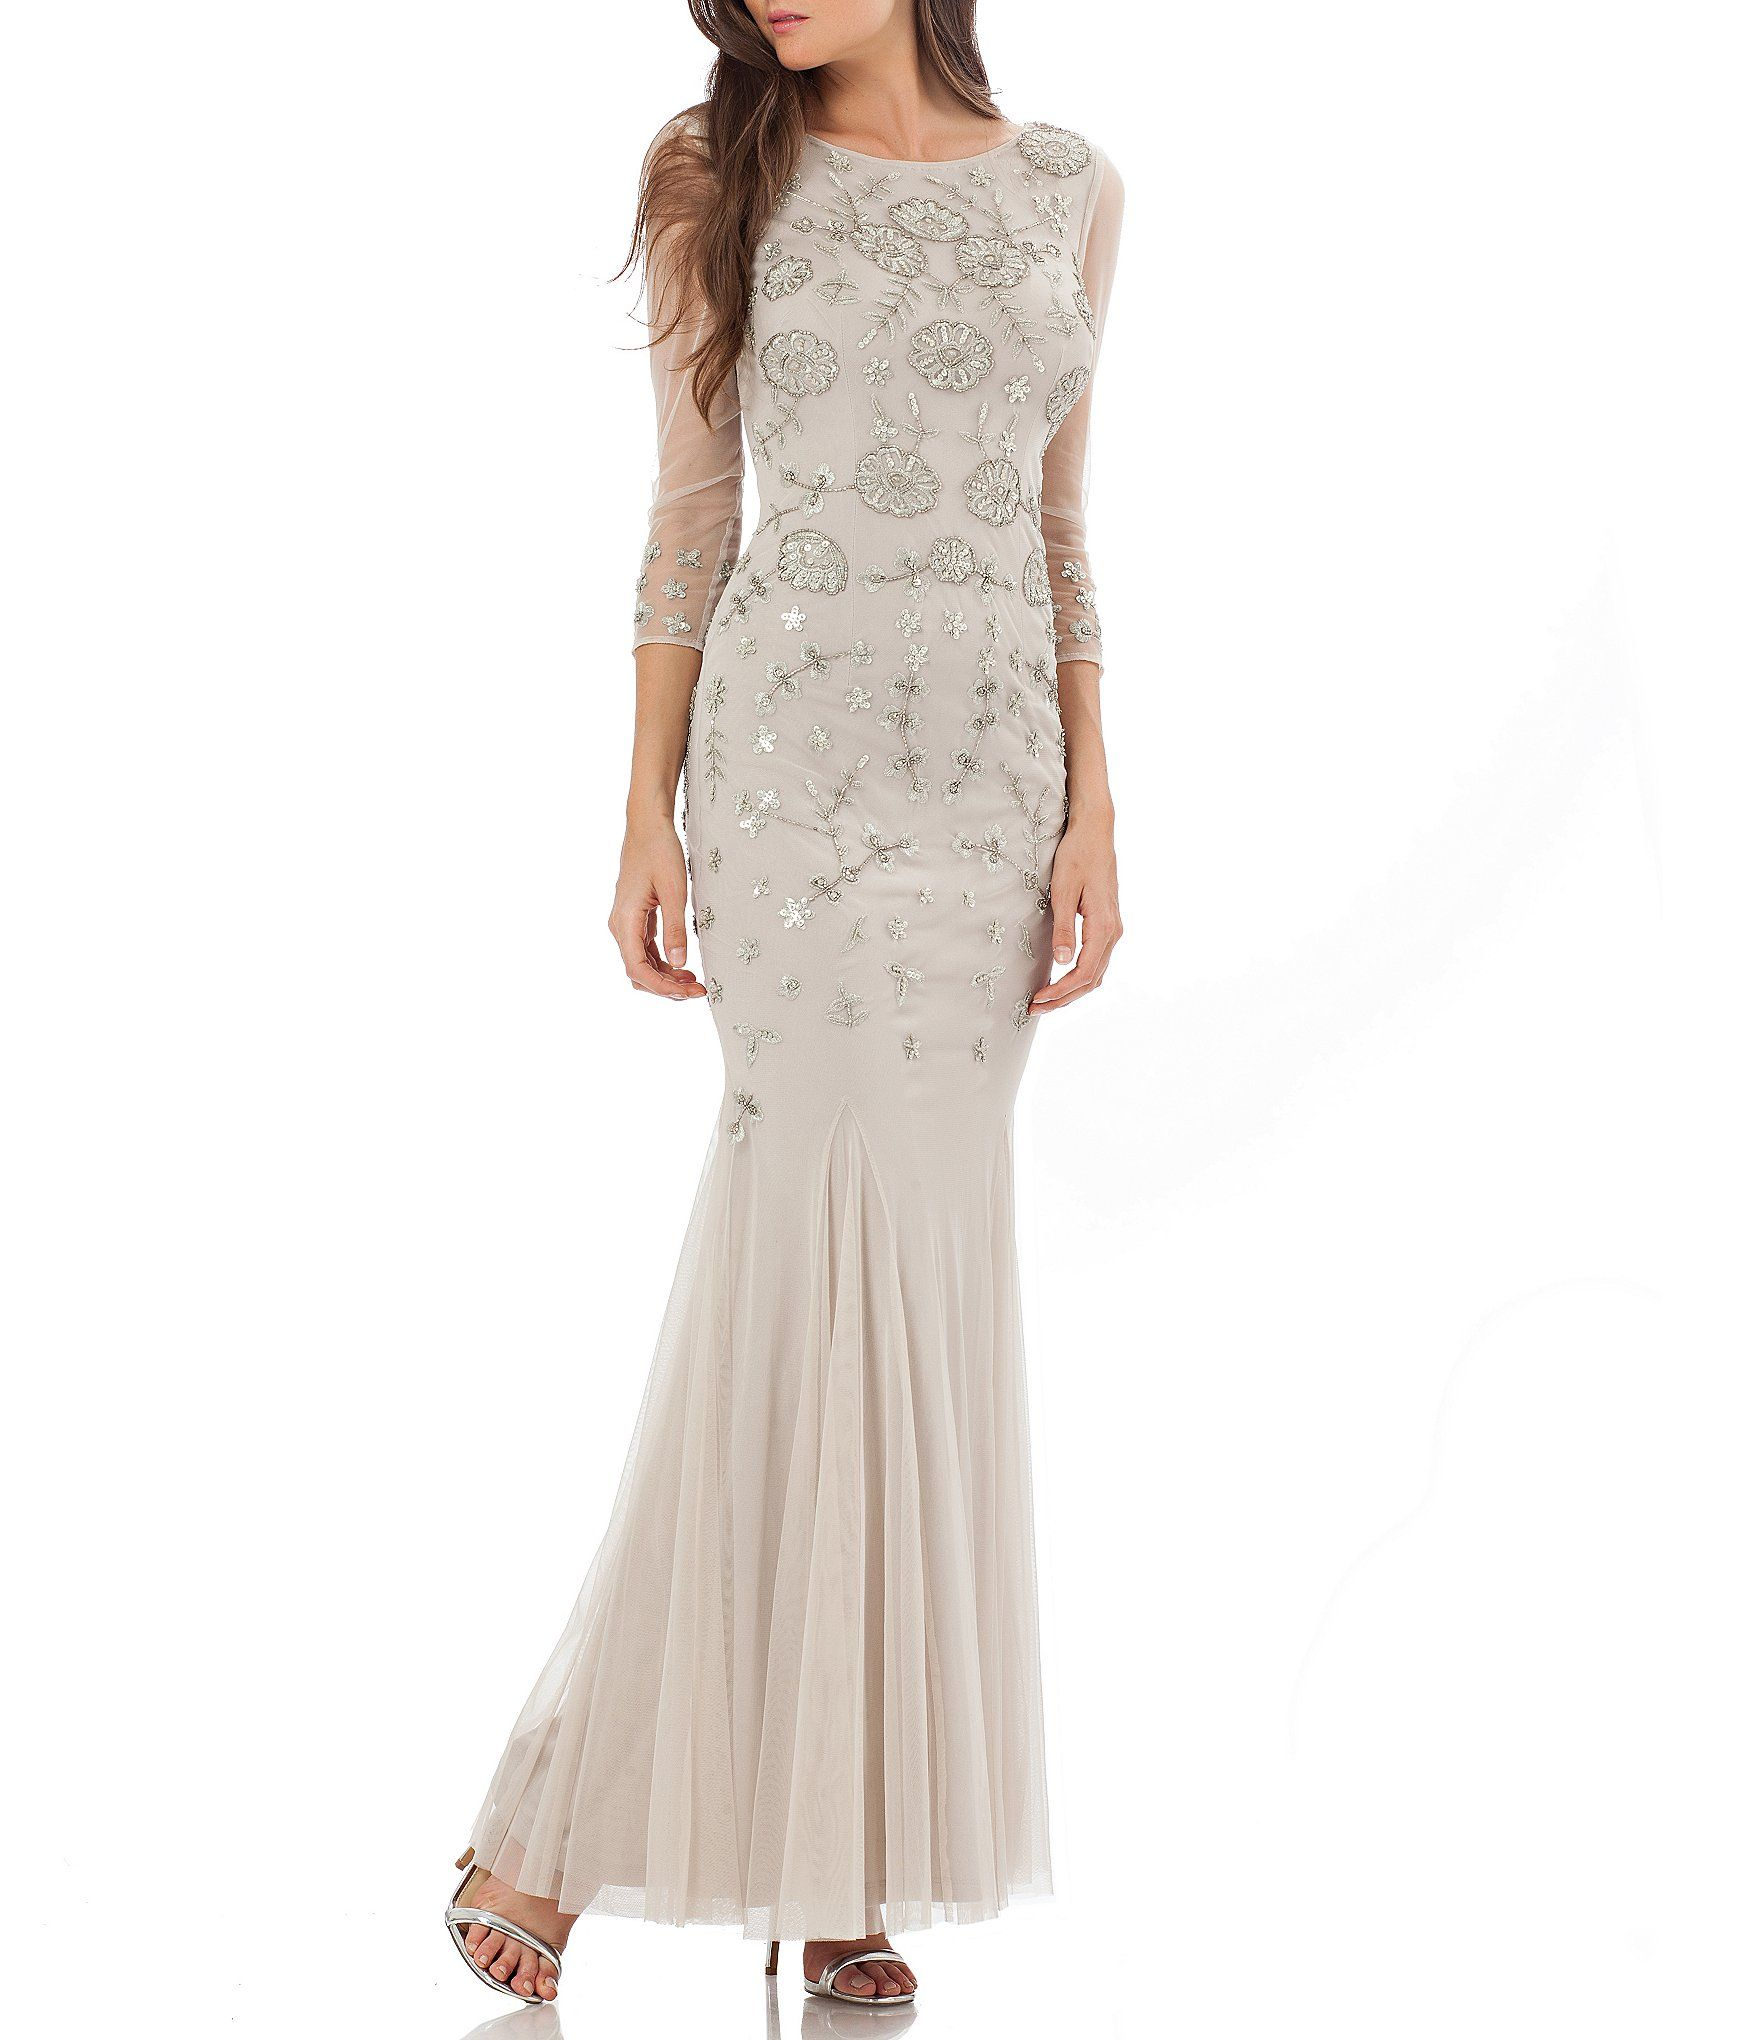 JS Collections Embroidered Beaded 3/4 Sleeve Gown | Dillards, Gowns ...